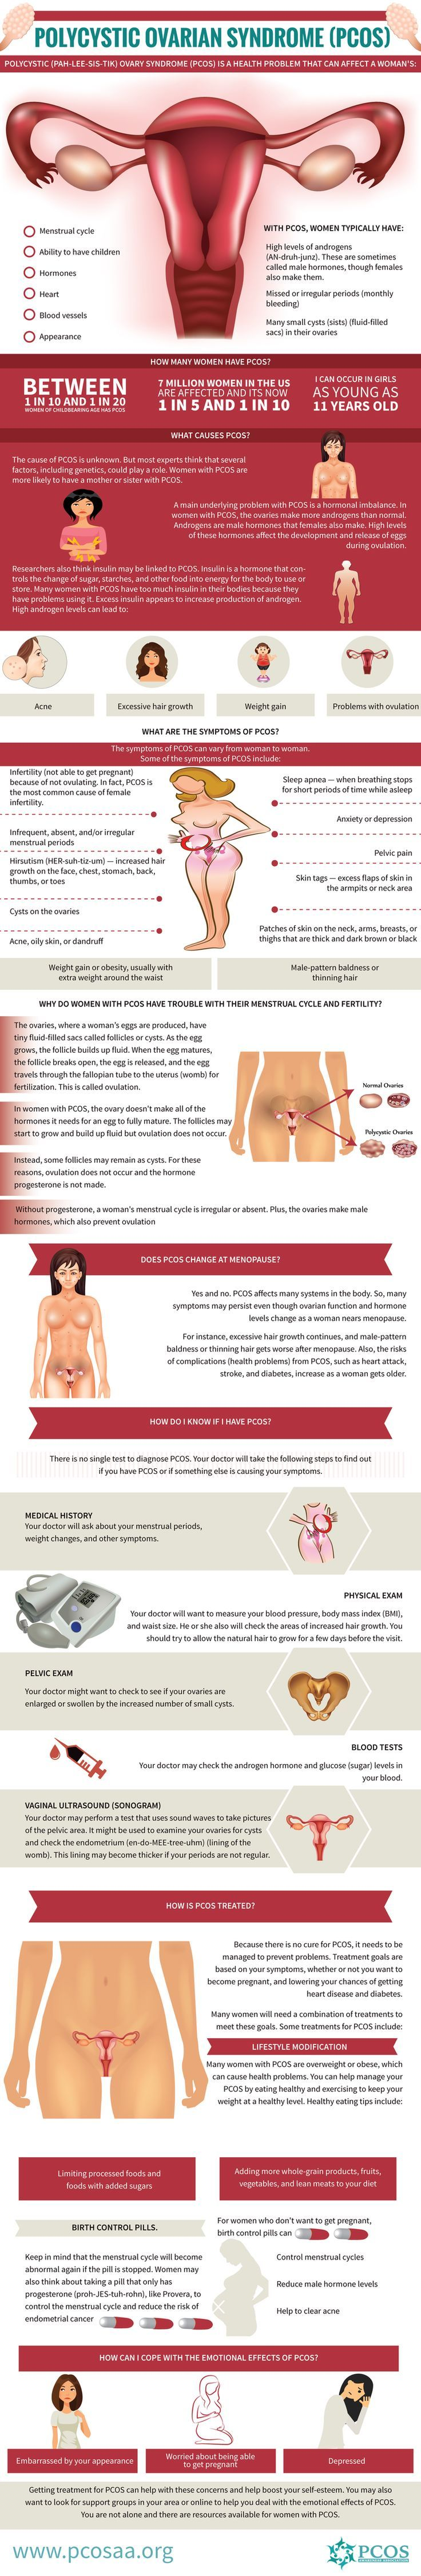 PCOS Infographs — PCOS Awareness Association